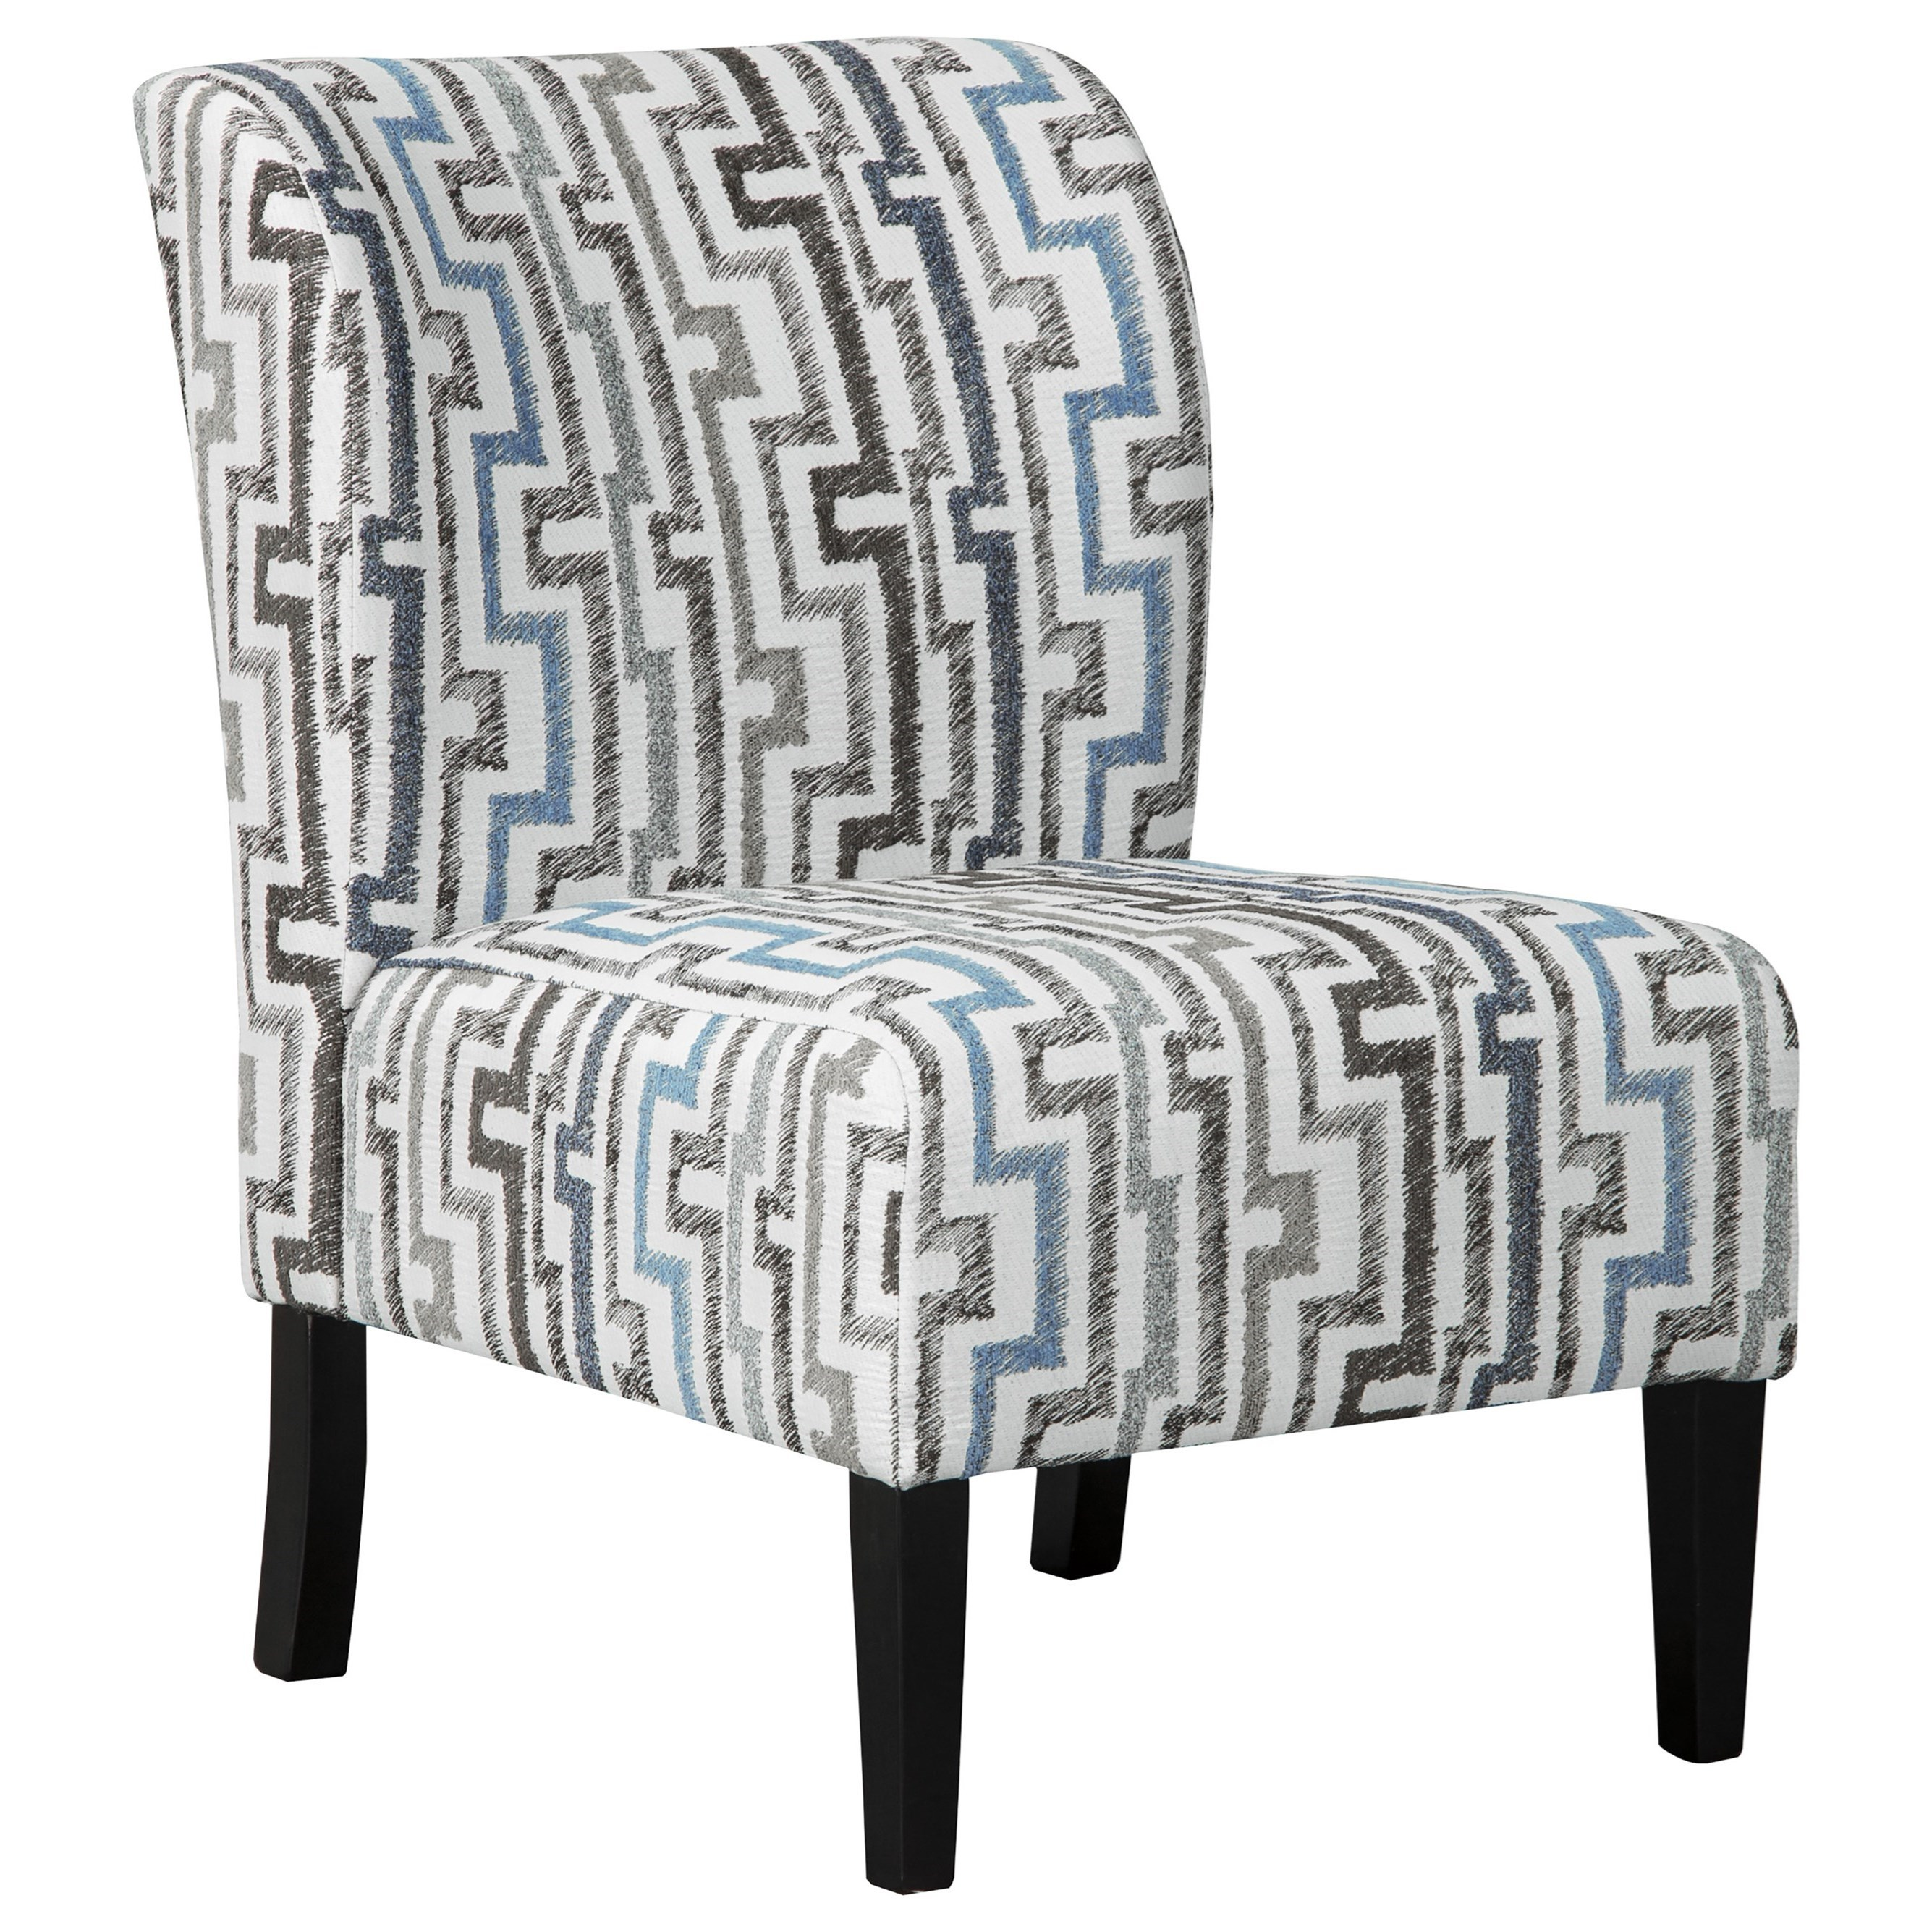 Rocking Accent Chairs Alsen Contemporary Accent Side Chair By Benchcraft By Ashley At Royal Furniture